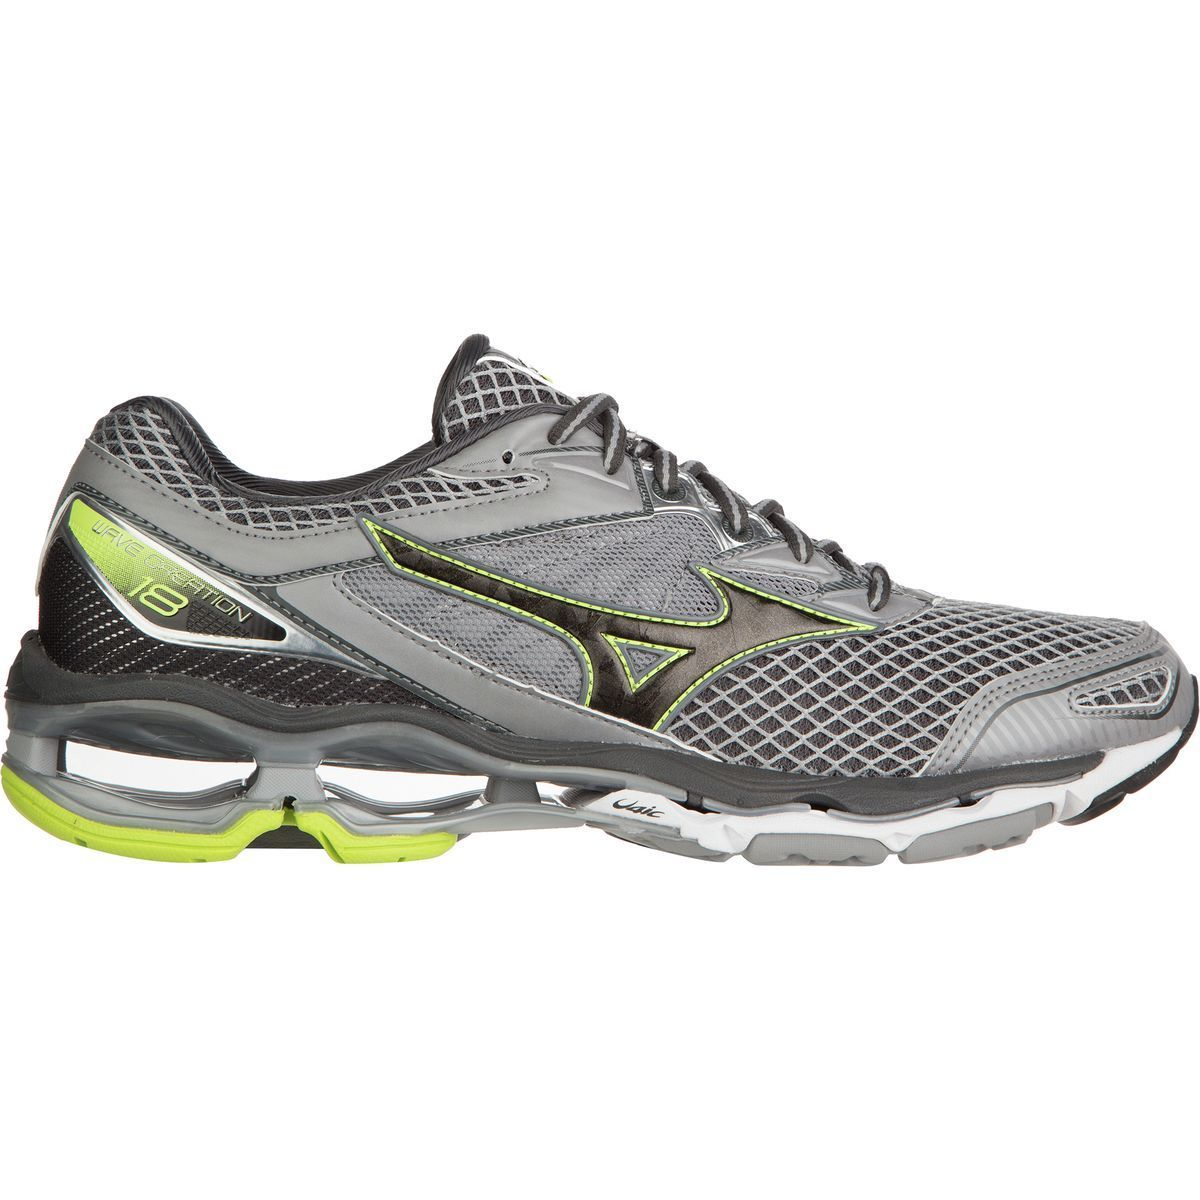 Mizuno Wave Creation 18 Running Shoe Men's